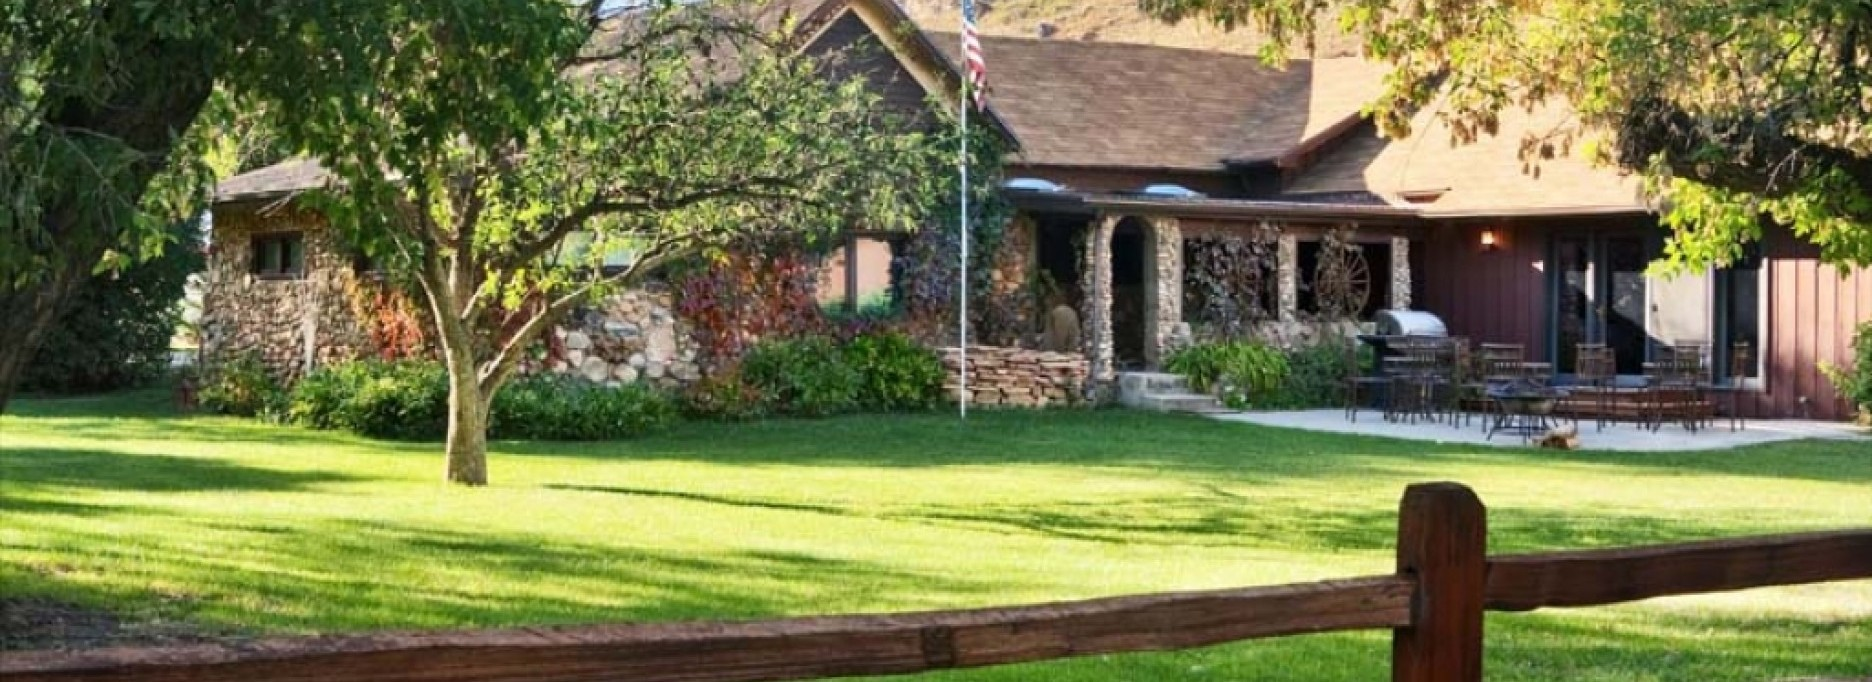 Custer Ranch House » Specialty Cabins » Lodges & Cabins » Custer State Park Resort